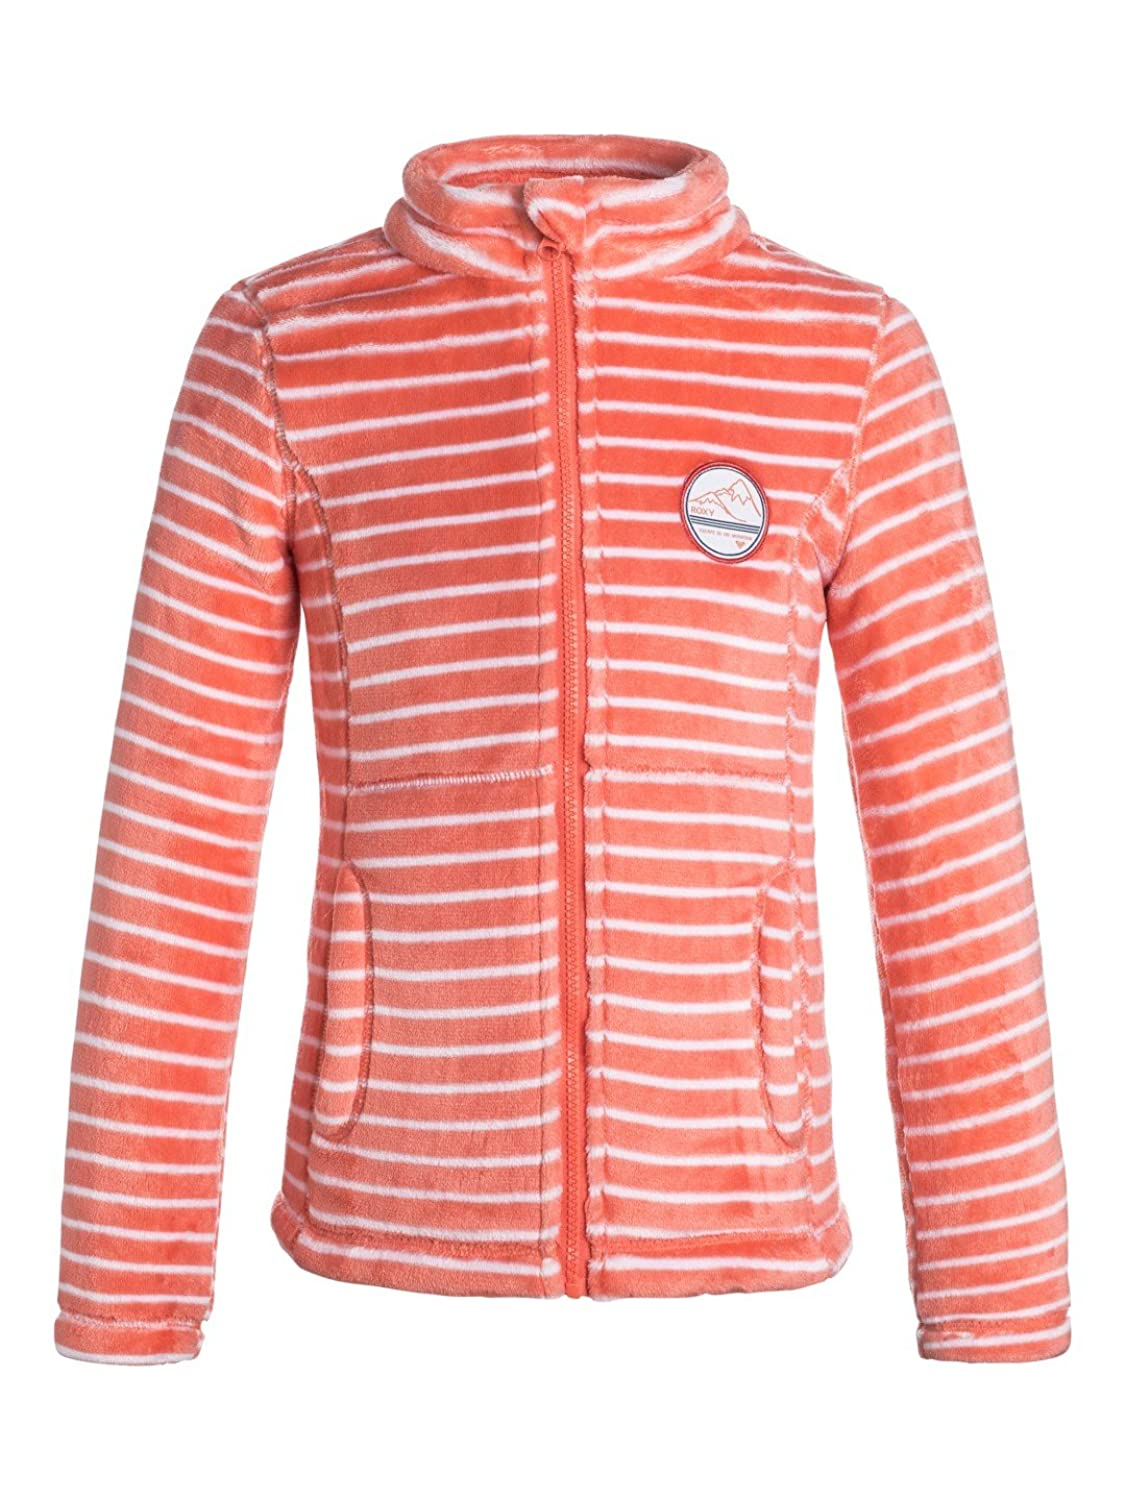 Kinder Fleecejacke Roxy Igloo Fleece Jacket Girls